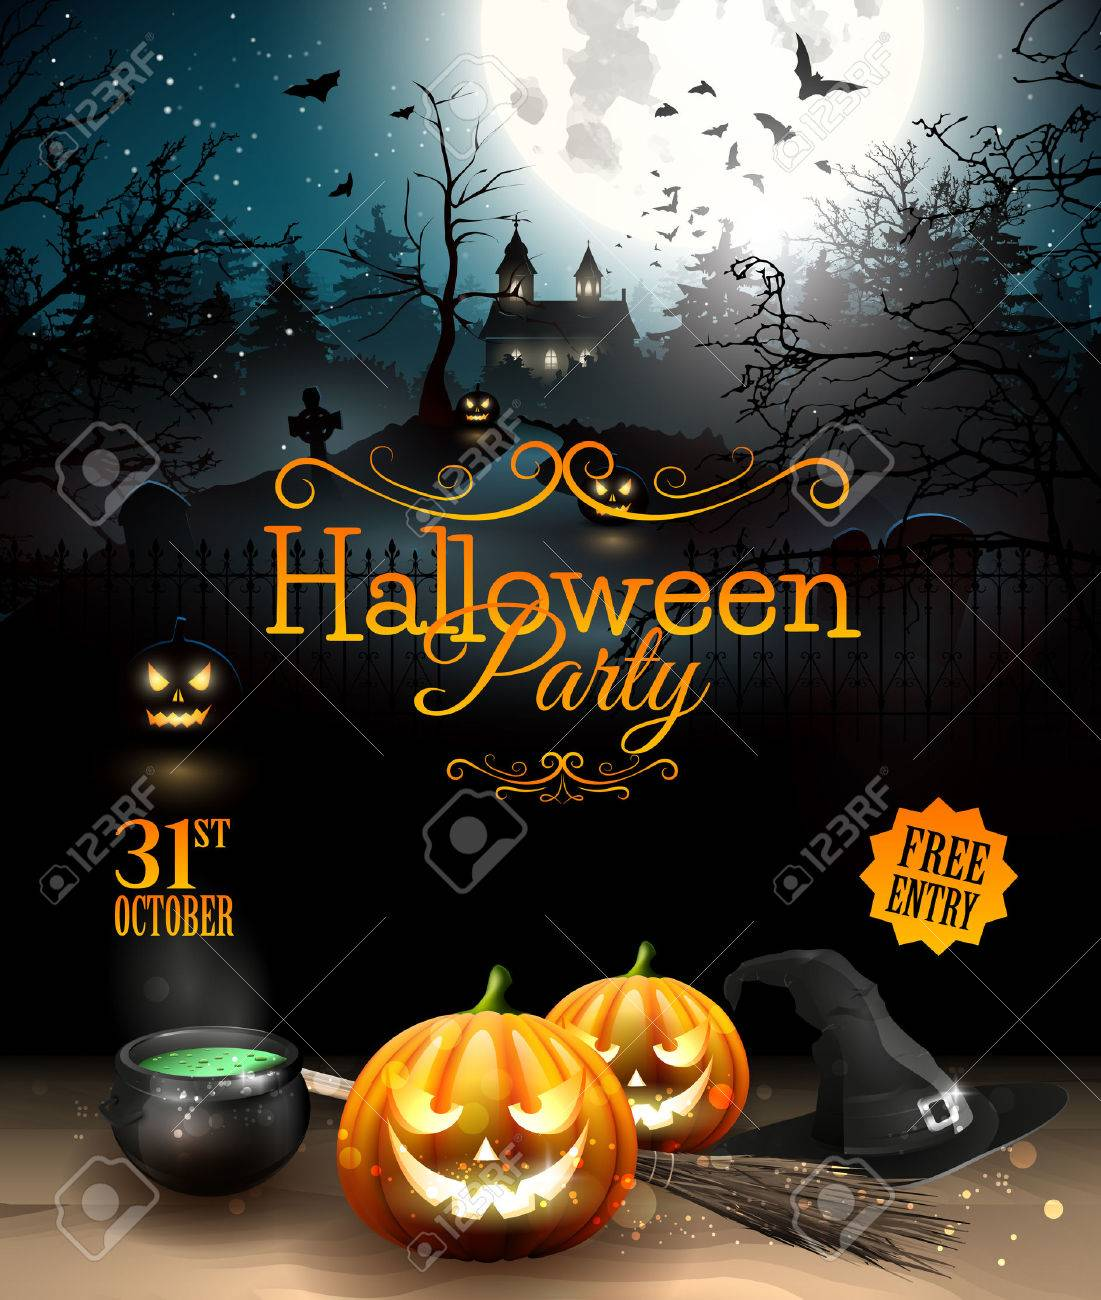 Halloween Party Flyer With Pumpkins, Hat, Pot And Old Broom In ...